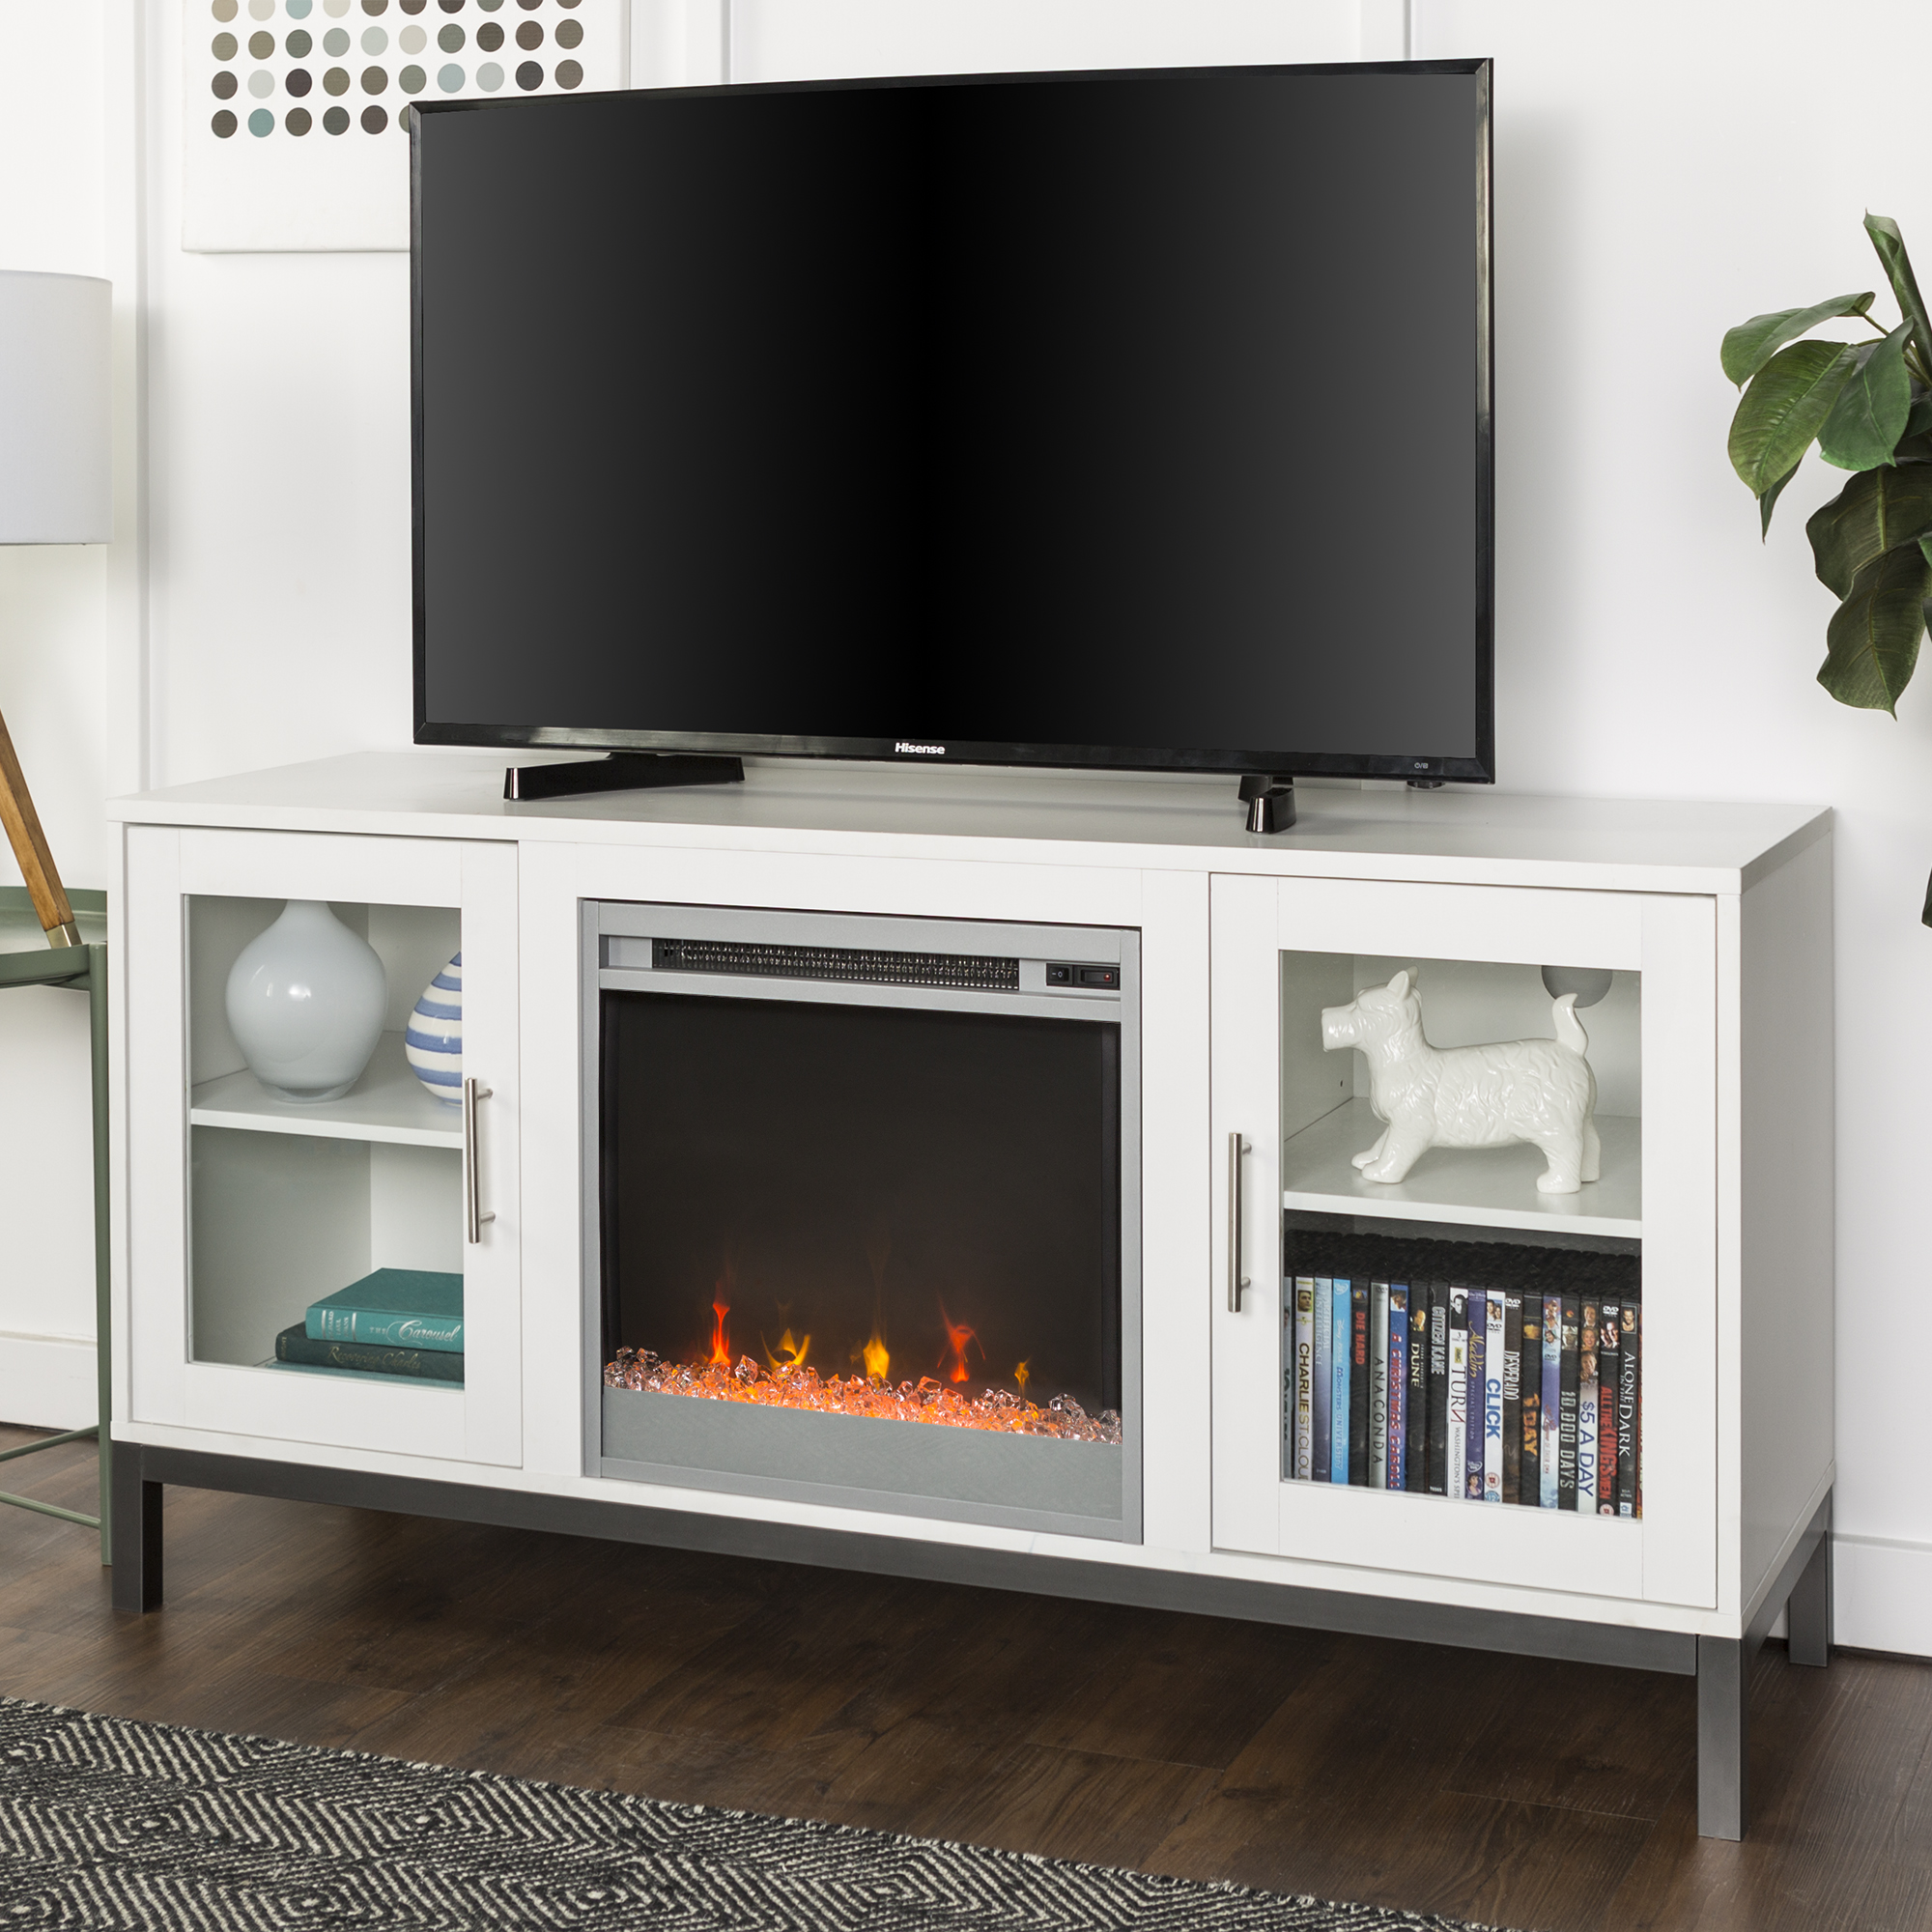 "52"" Modern Wood Fireplace Media TV Stand Storage Console Entertainment Center - White"